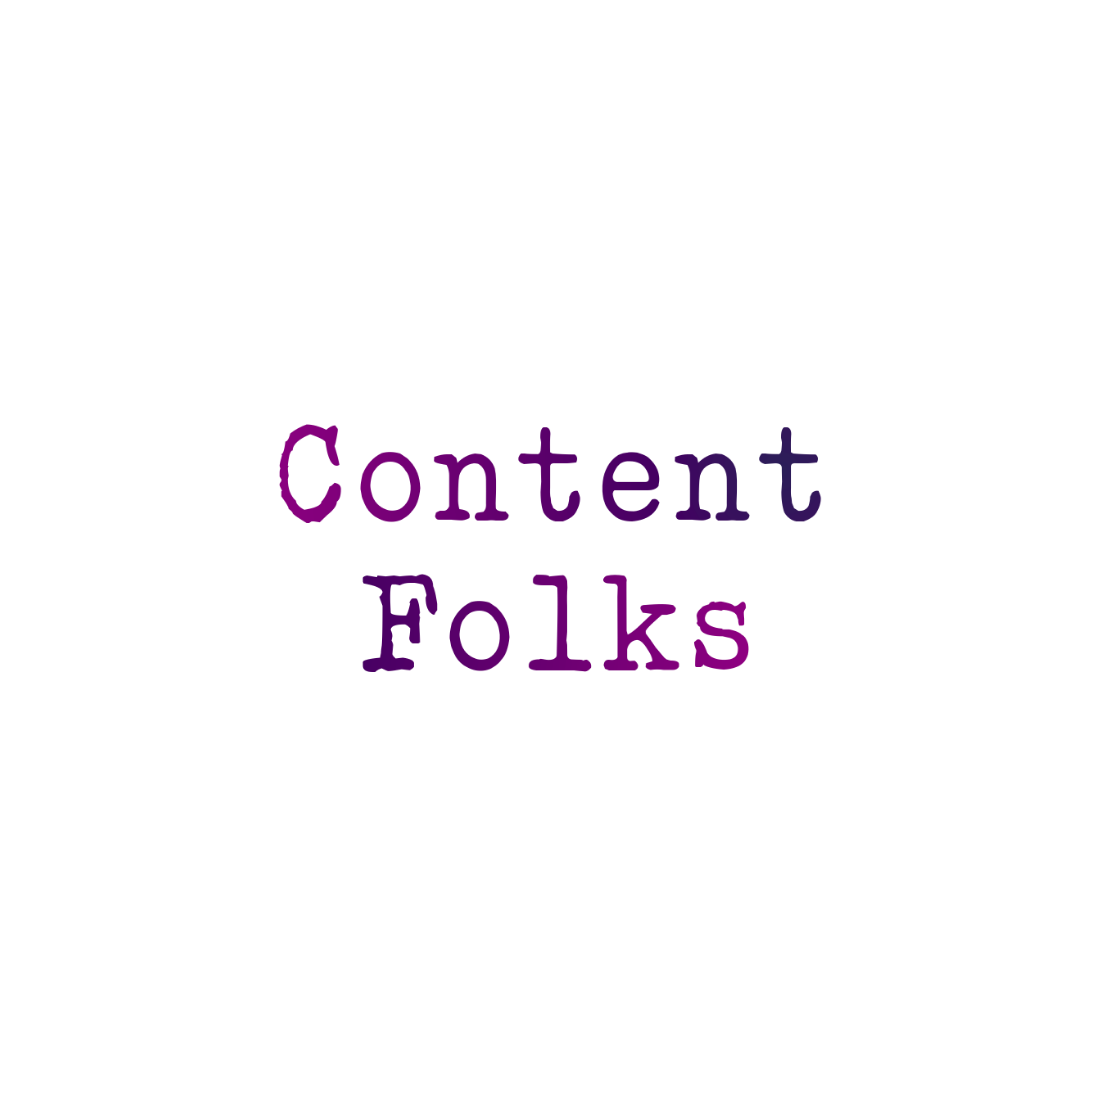 Content Folks - March 2020